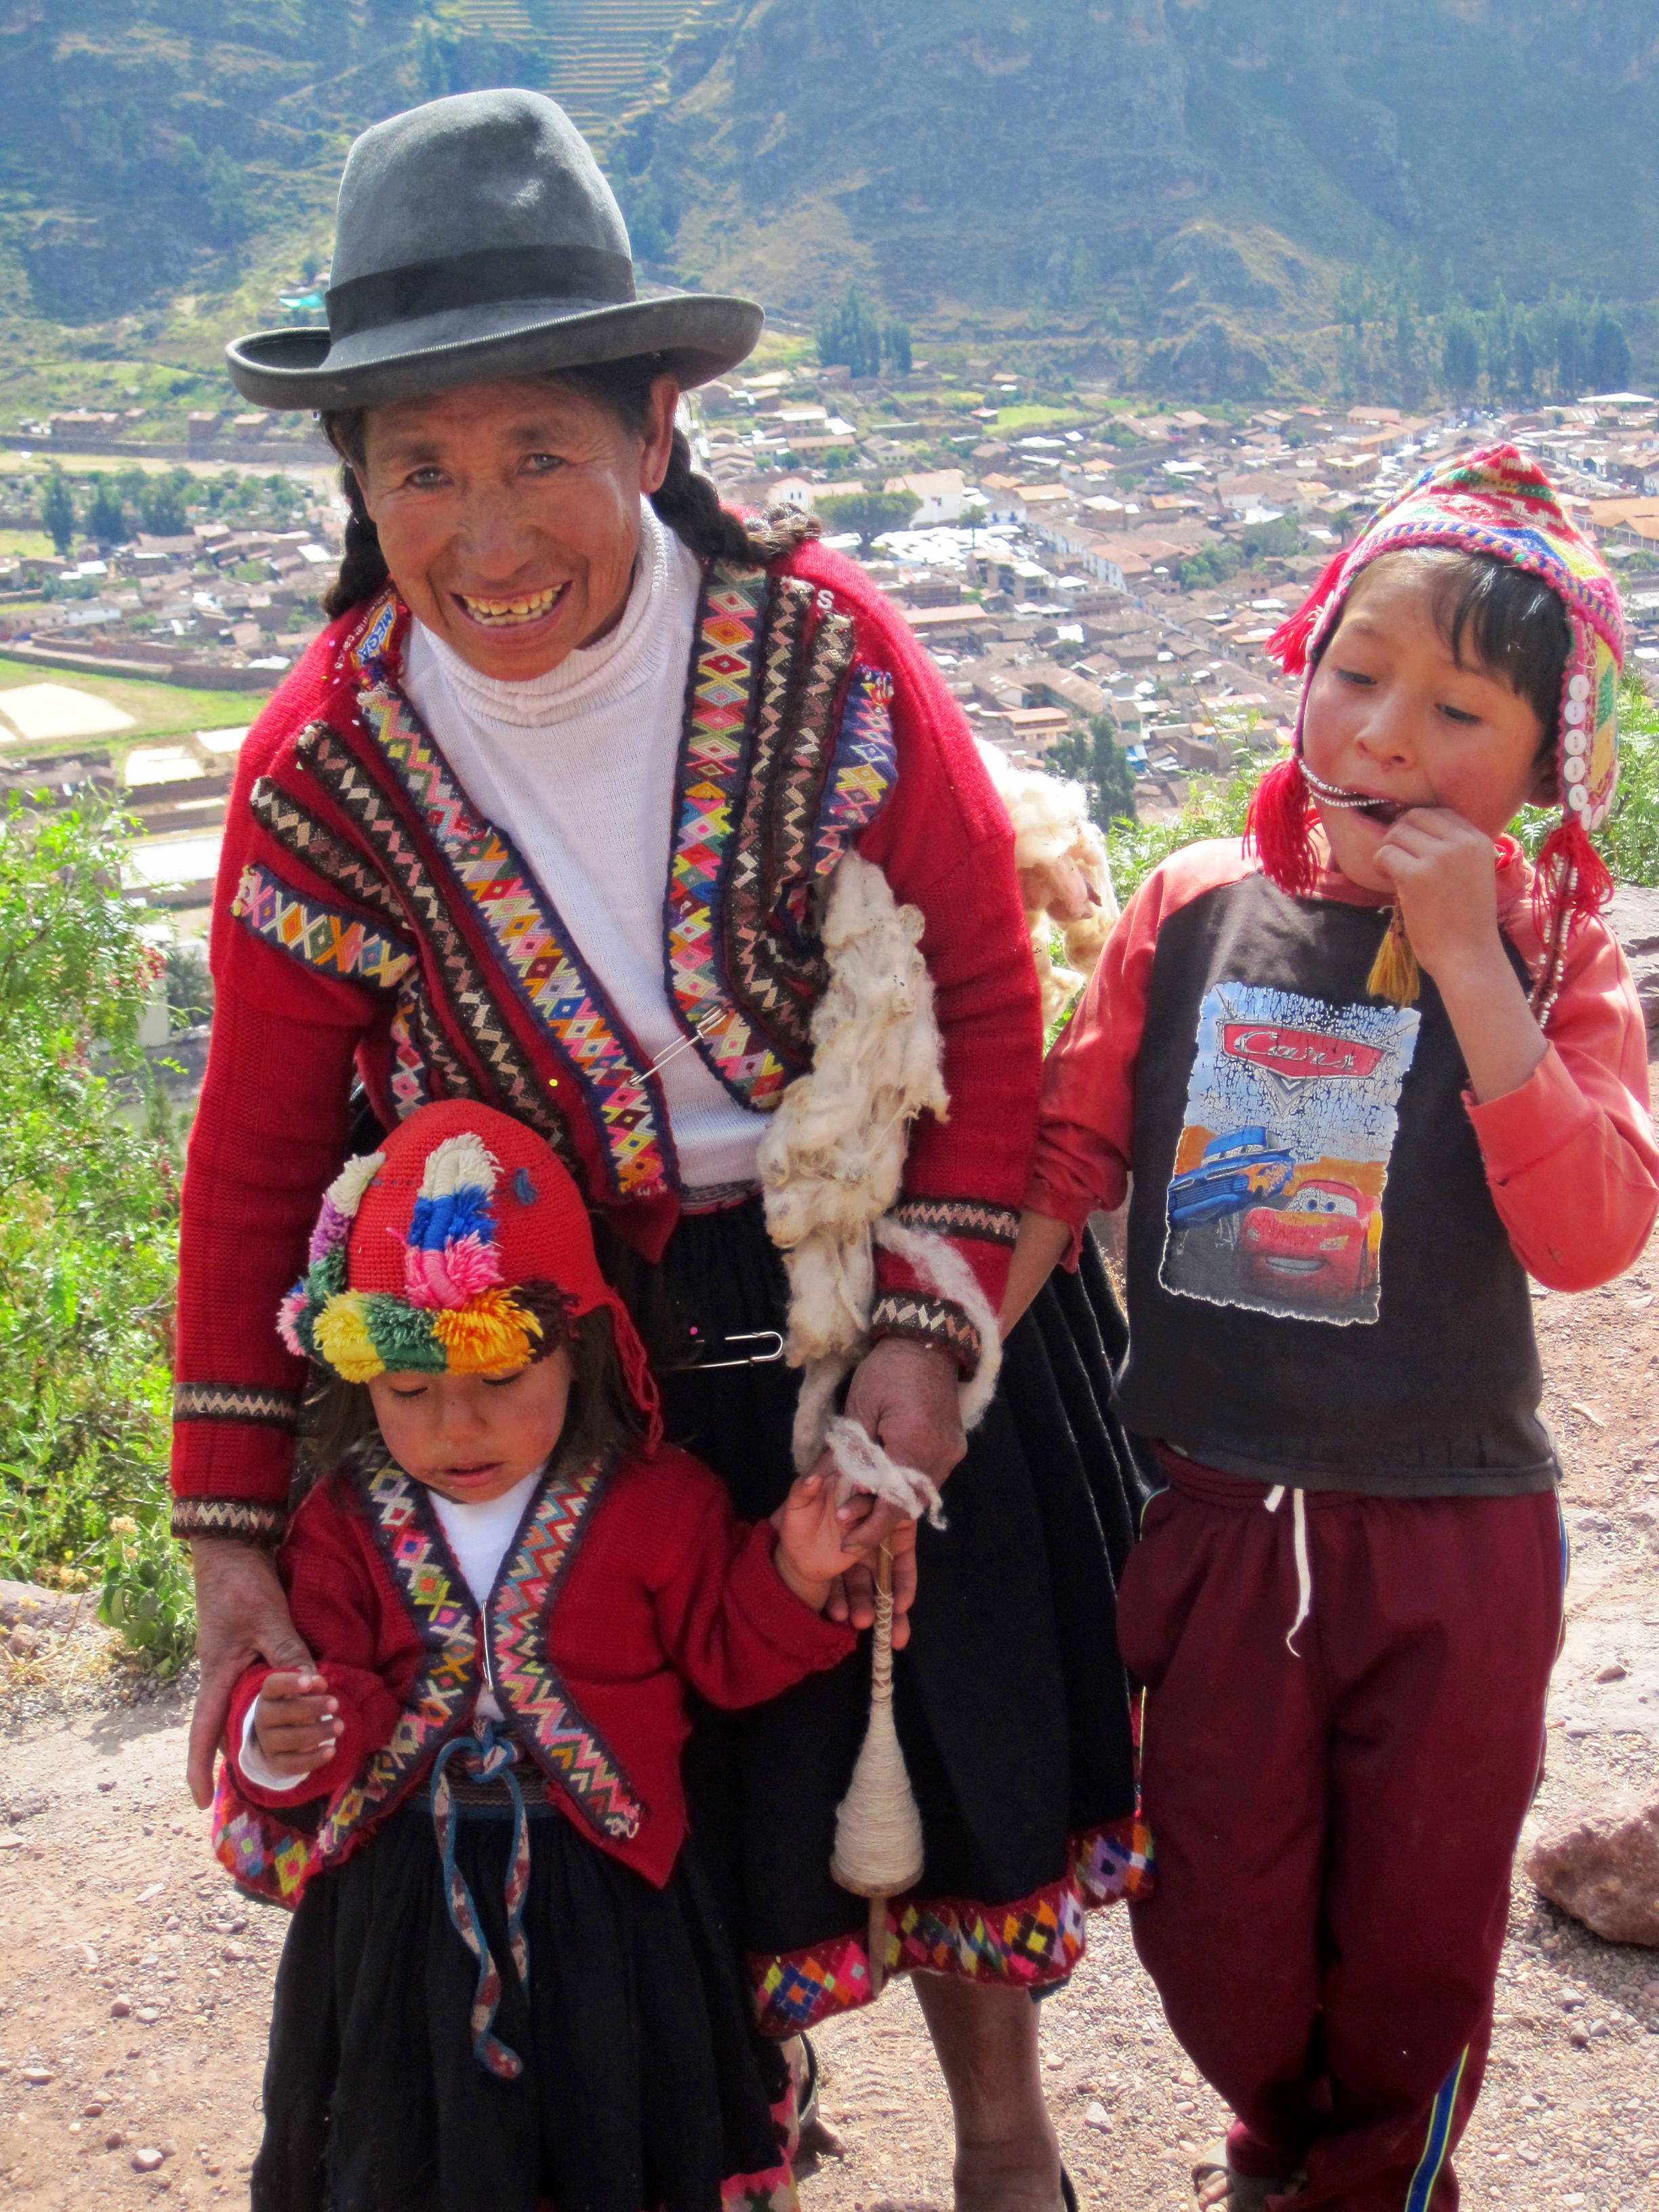 We met this Quechua woman and her two children in one of the ruins. She and her older daugher sell these bracelets she weaves. Moms like her are the ones participating in our vaccine bracelet pilot study. Photo taken: May 12, 2013.